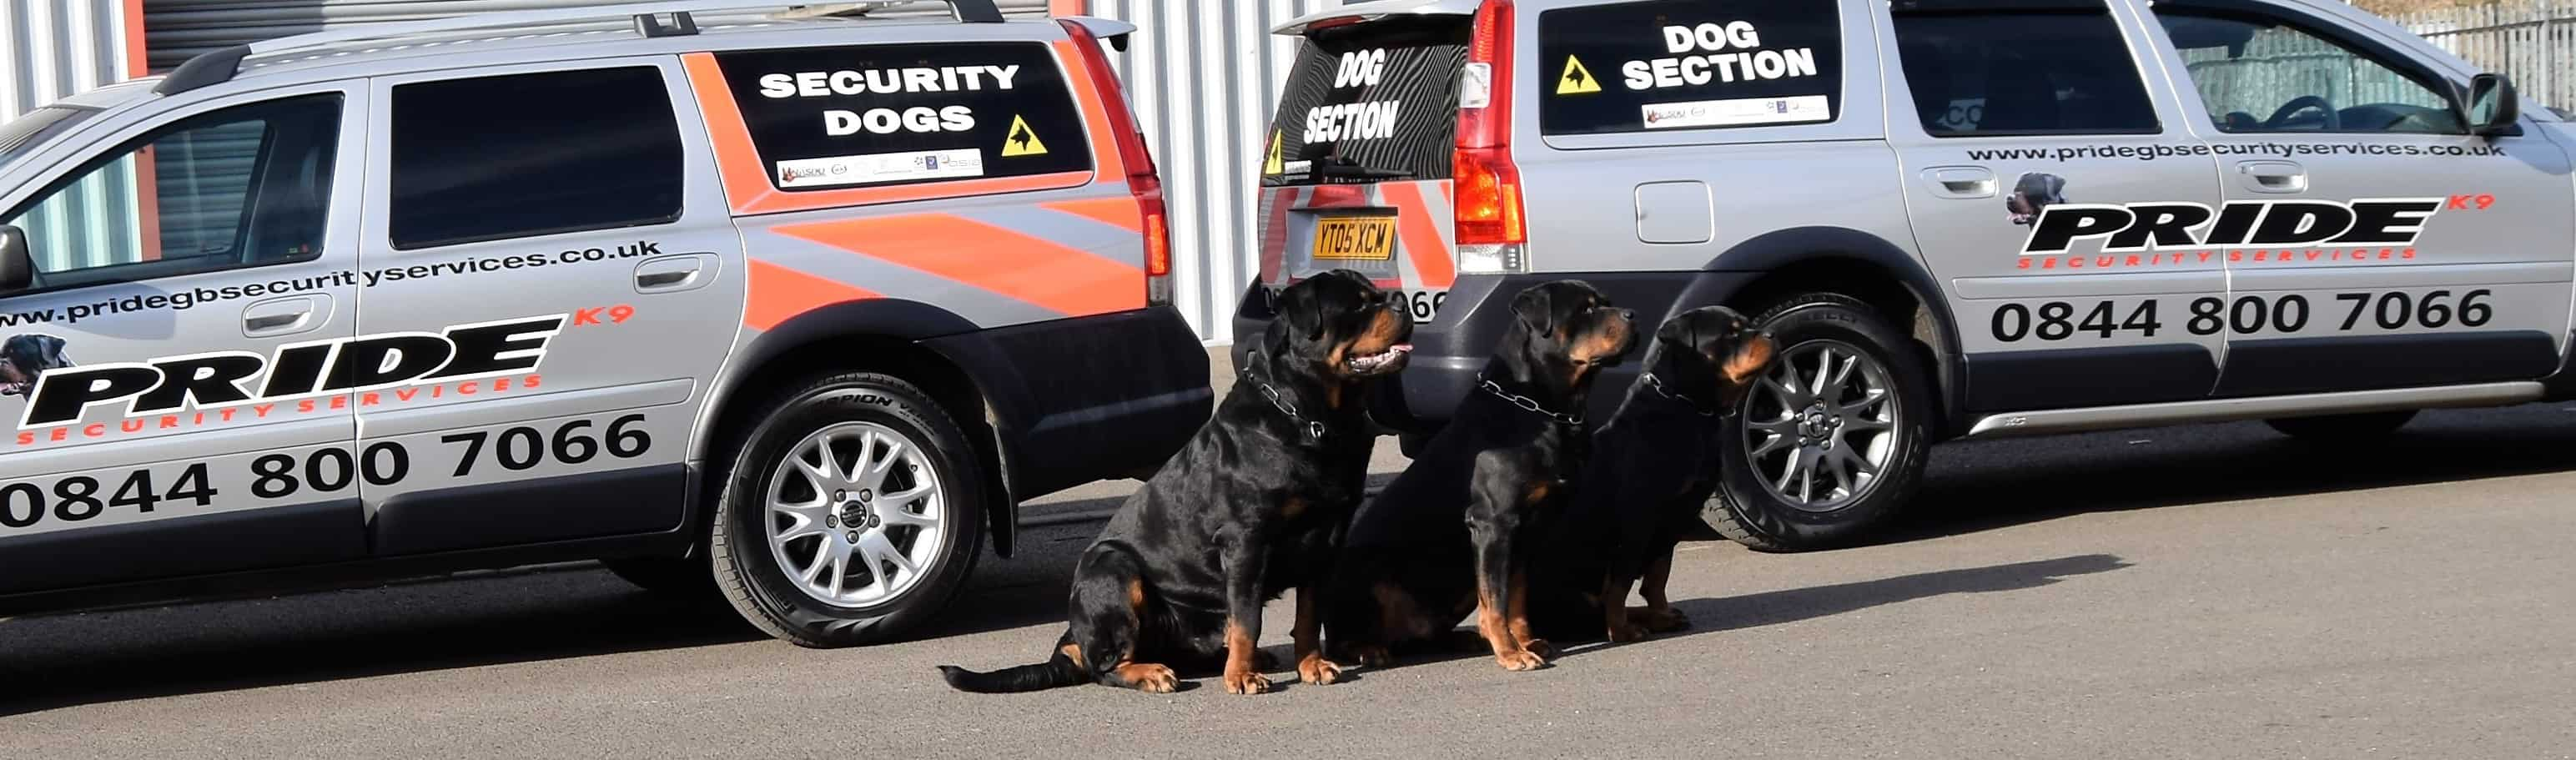 Security dog section